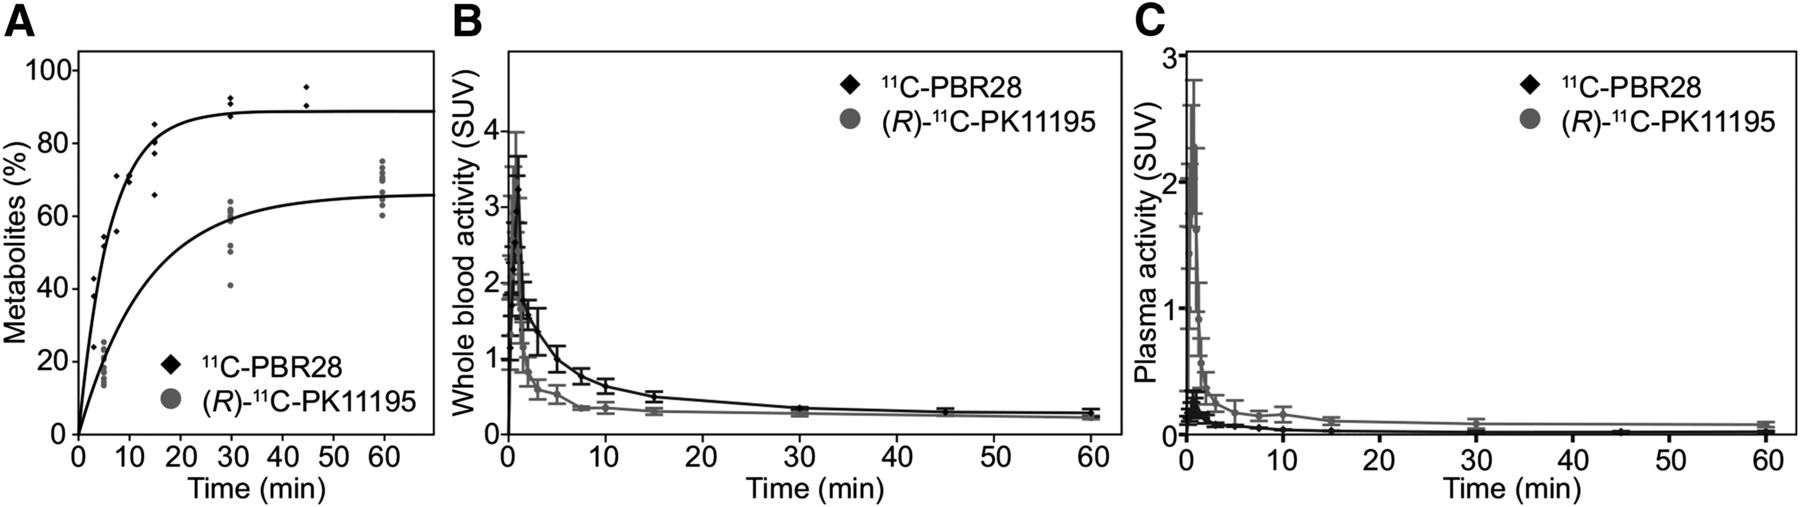 Pharmacokinetic Analysis of 11C-PBR28 in the Rat Model of Herpes